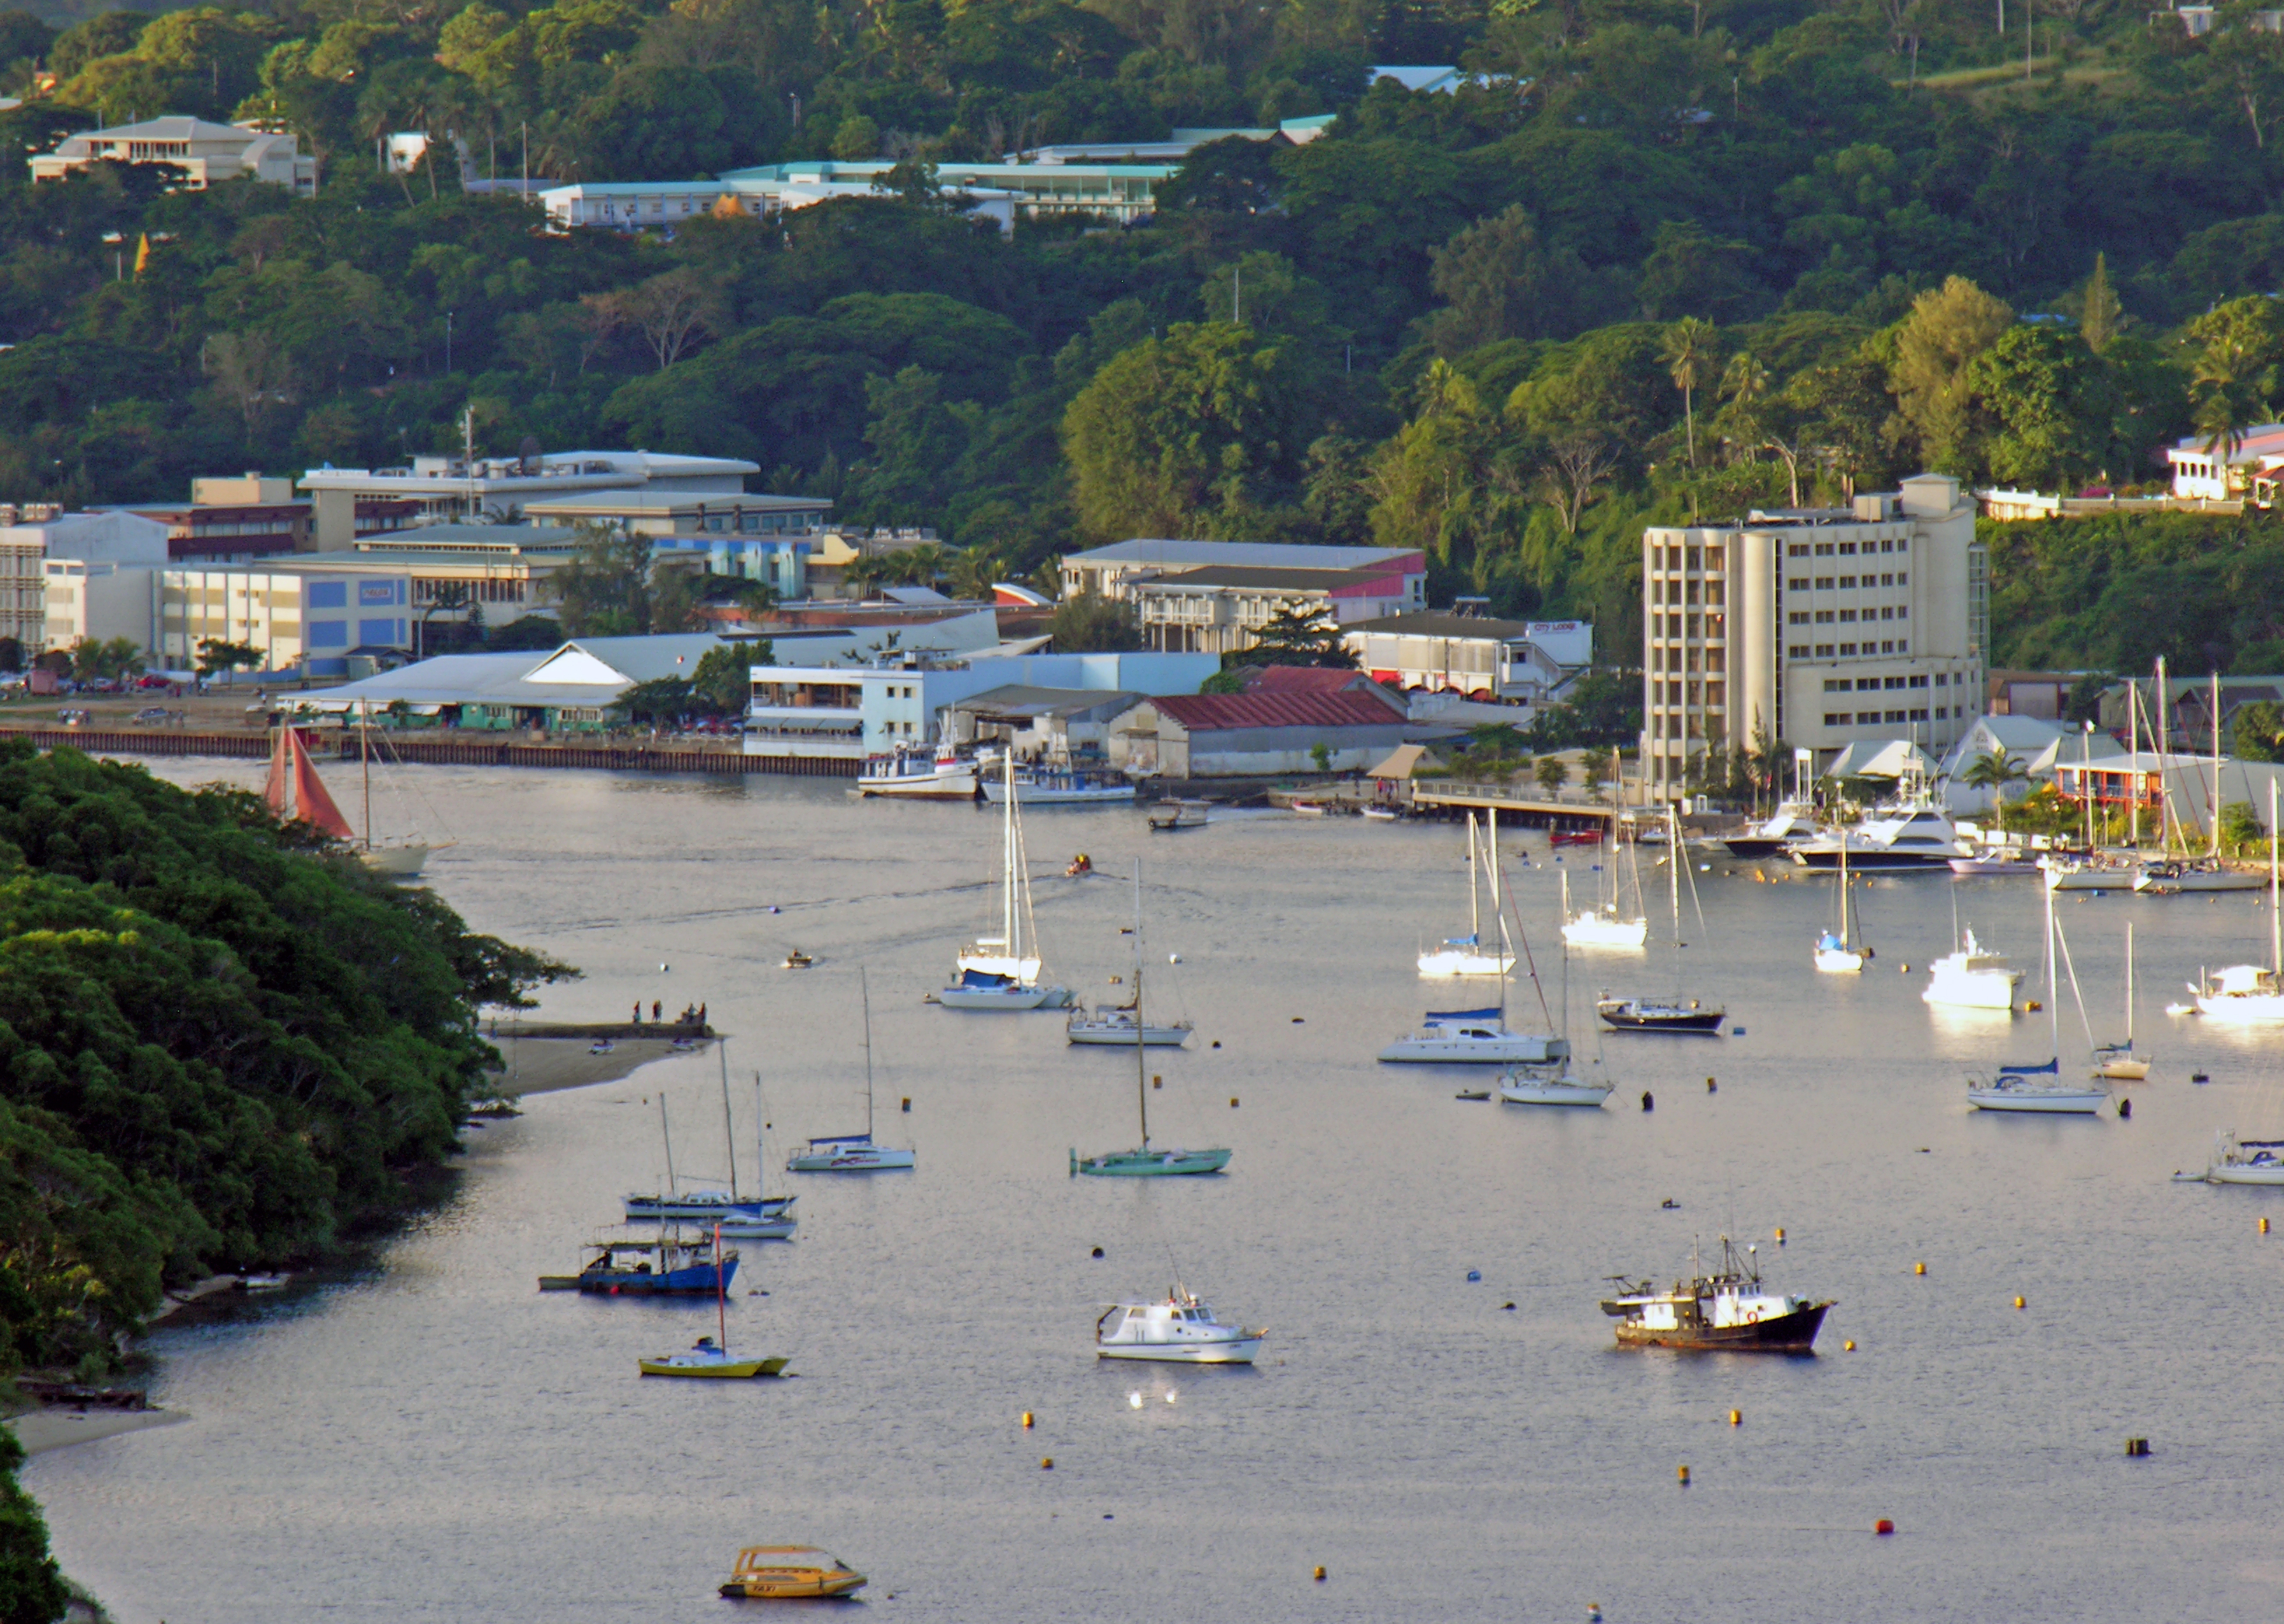 Port Vila Vanuatu  City pictures : Port Vila waterfront, Vanuatu, 2 June 2006 Flickr PhillipC ...